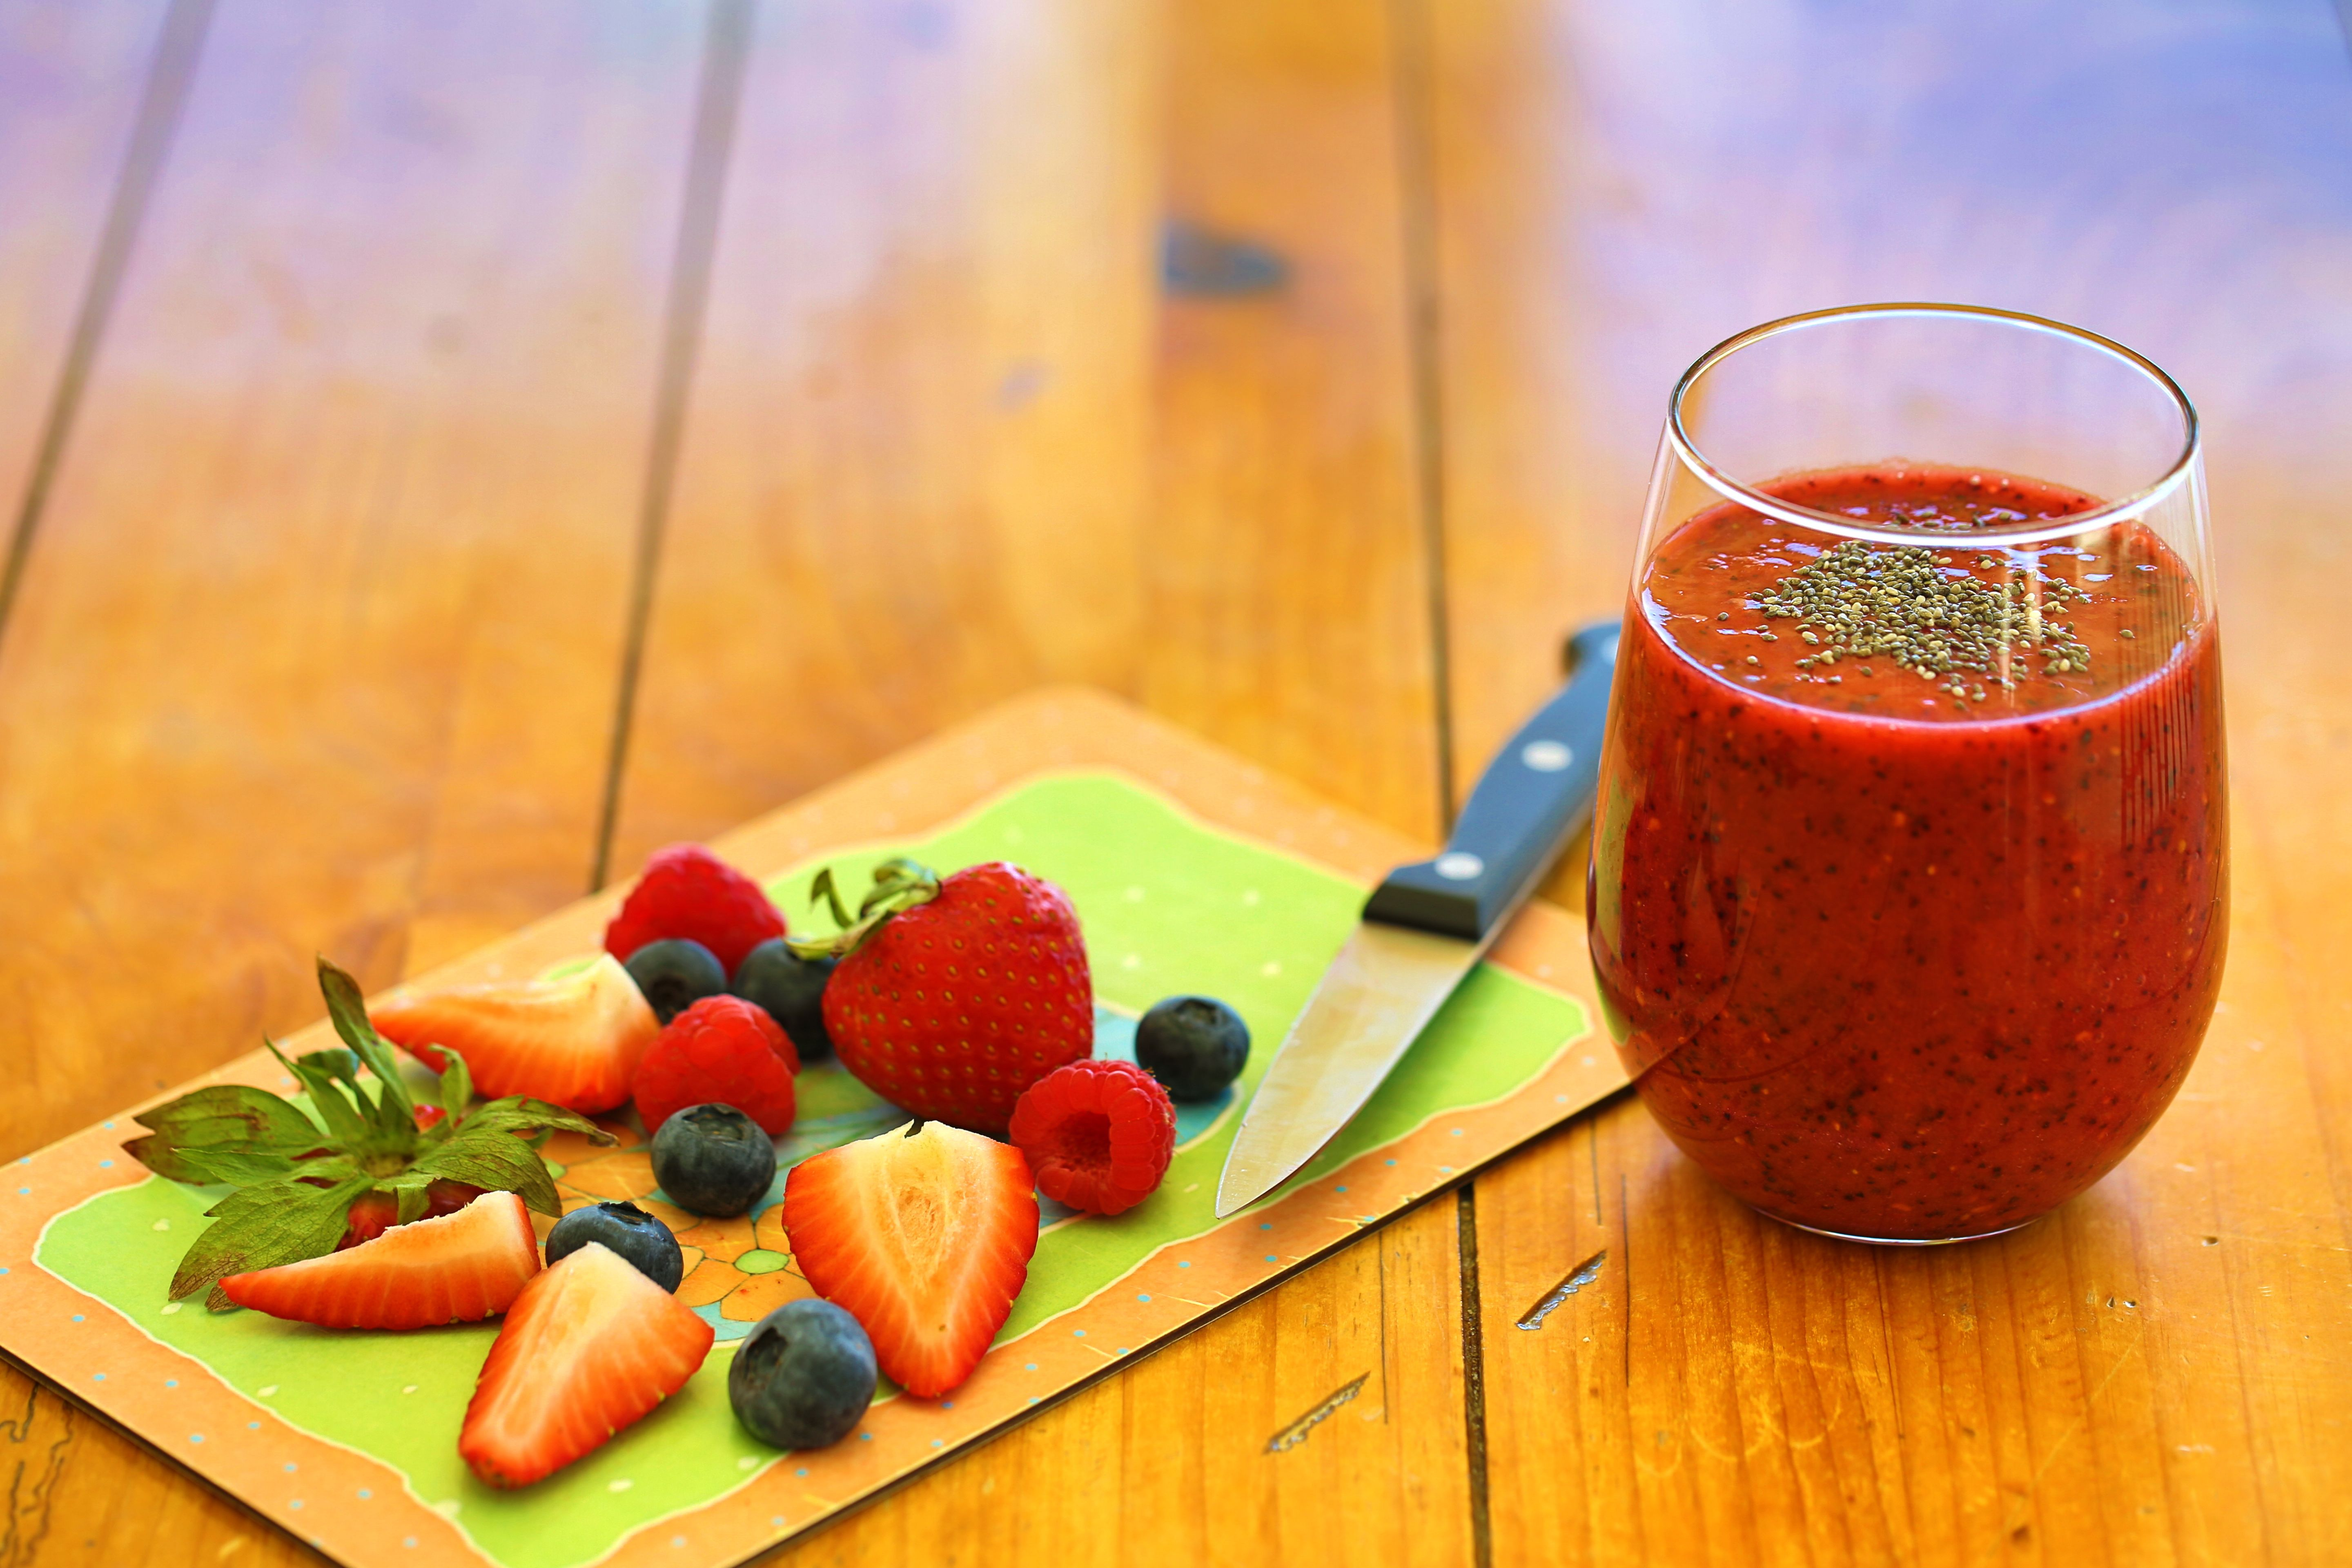 Delicious Goji Berry Smoothie with Chia Seeds